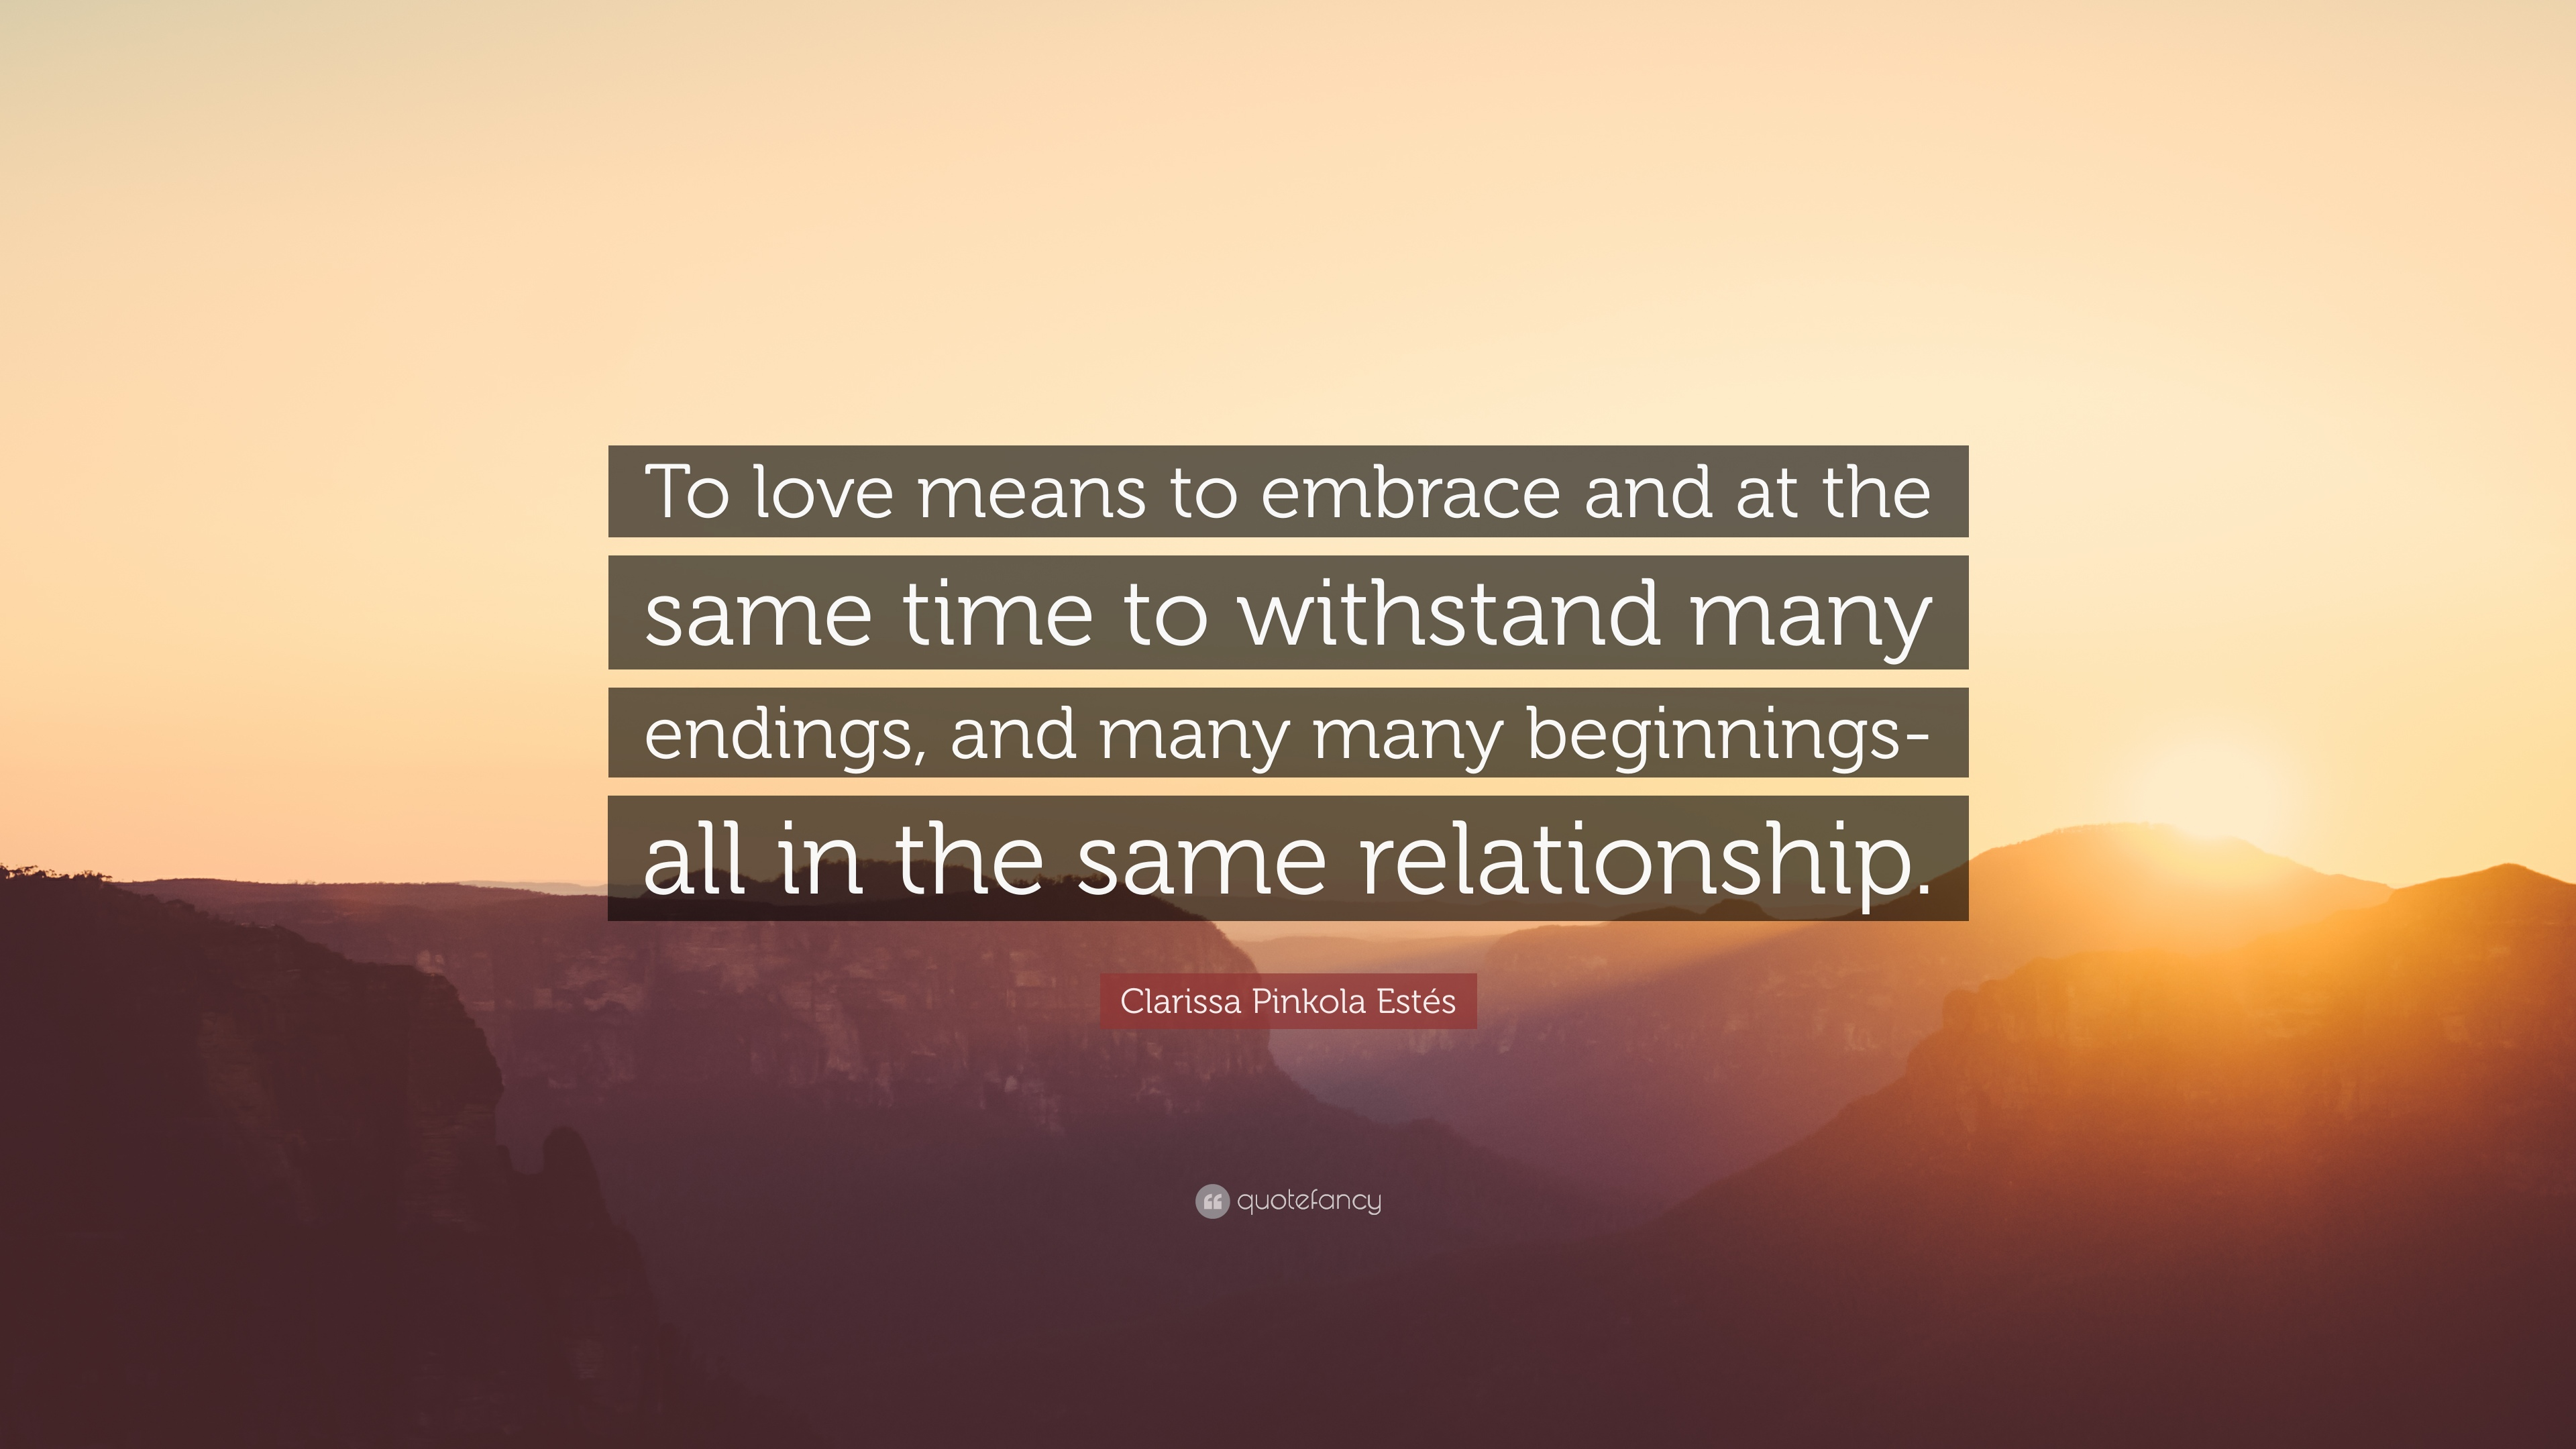 Superior Clarissa Pinkola Estés Quote: U201cTo Love Means To Embrace And At The Same Time